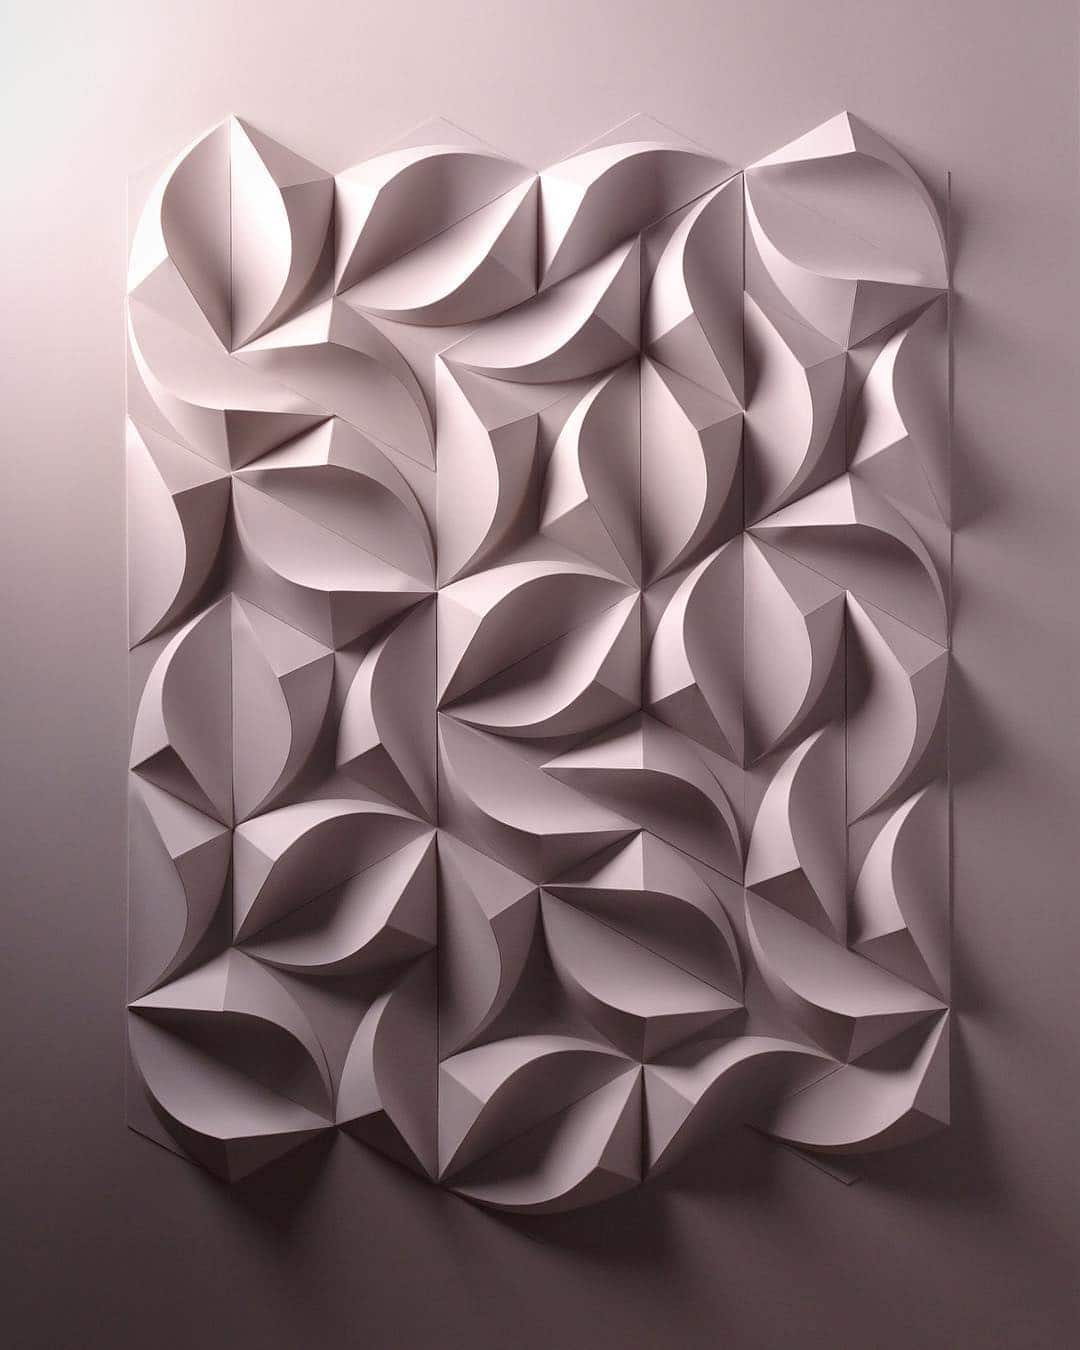 3D Paper Sculpture Art by Matthew Shilian